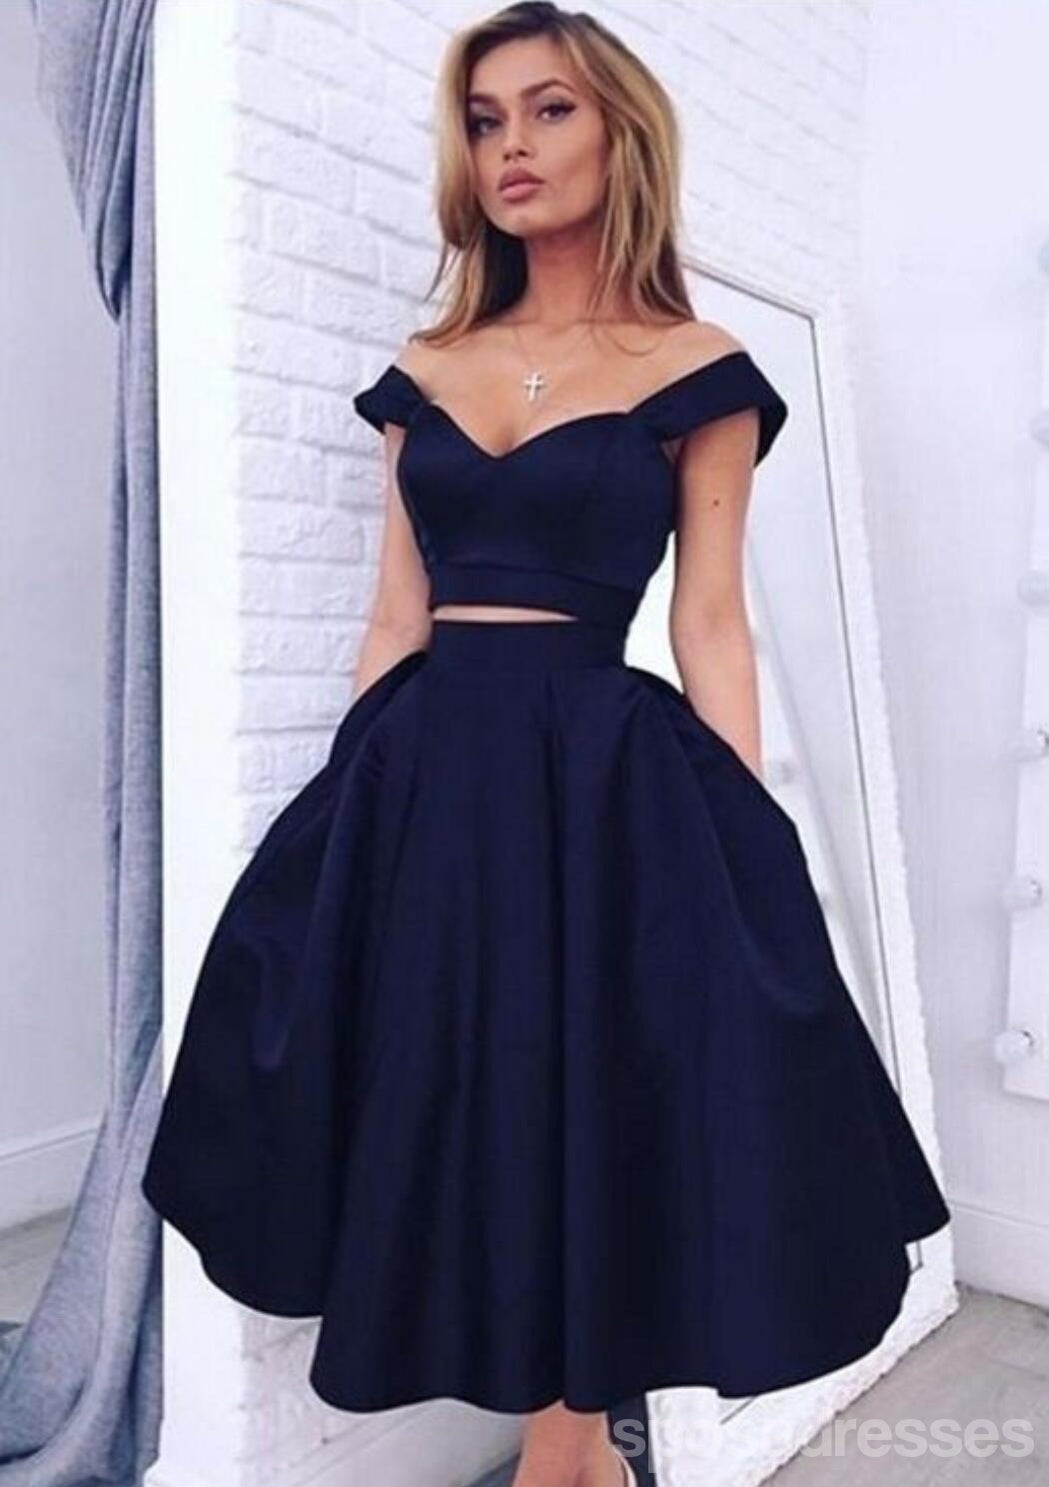 Sexy two pieces off shoulder navy blue homecoming prom dresses sexy two pieces off shoulder navy blue homecoming prom dresses affordable short party prom sweet ombrellifo Image collections